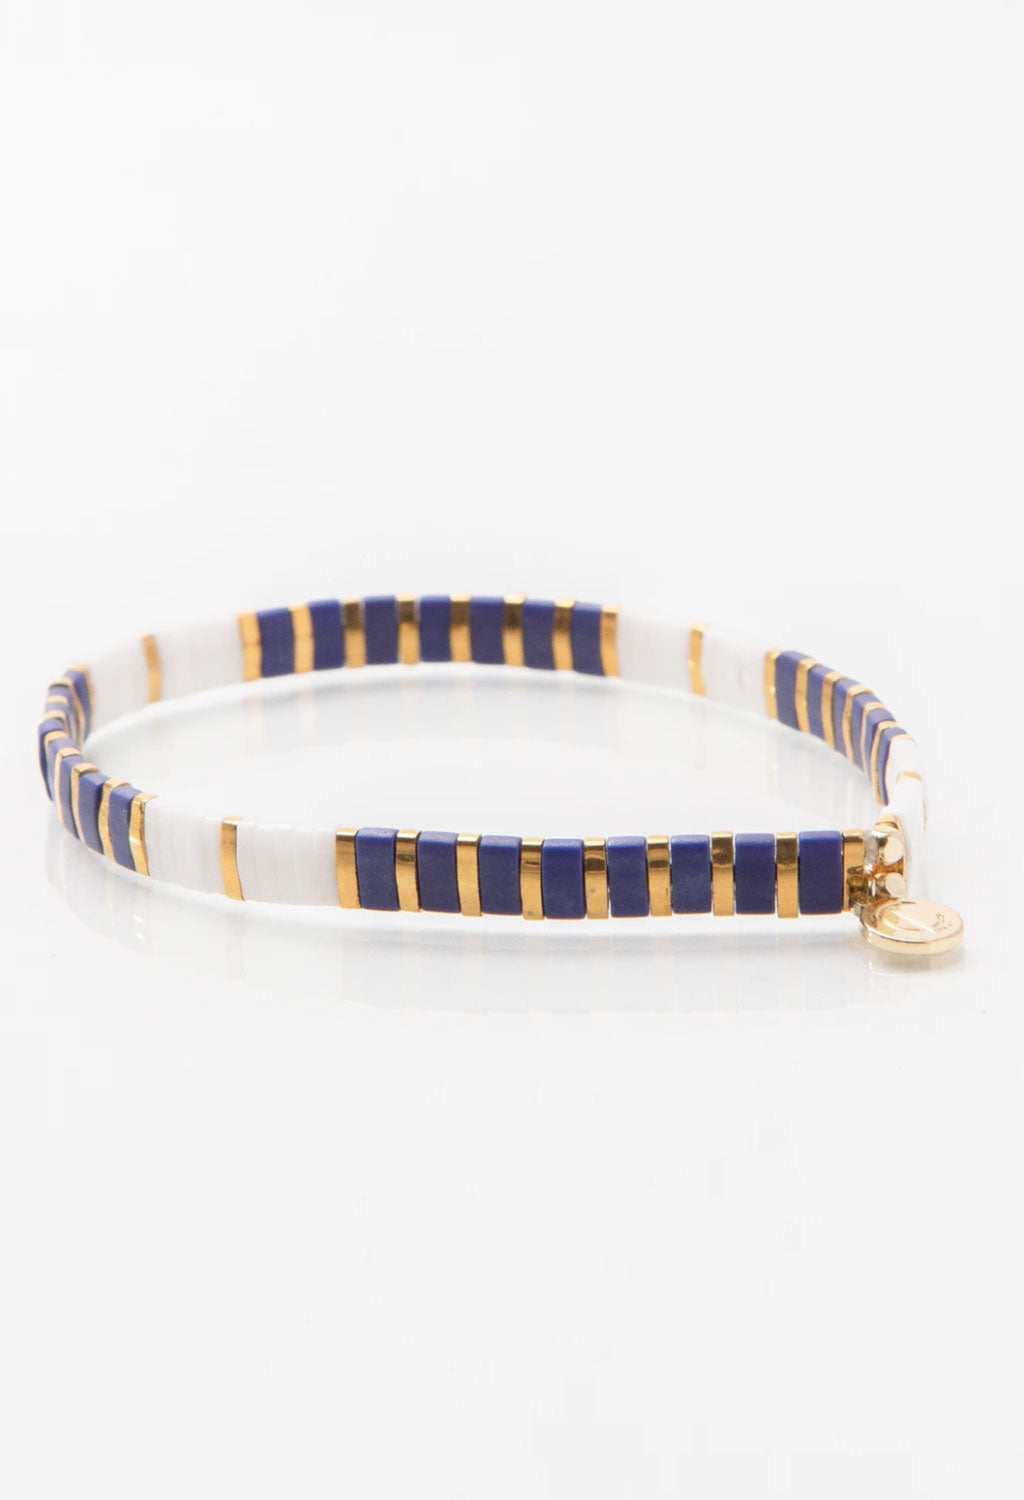 CL Navy/White & Gold Glass Bead Bracelet